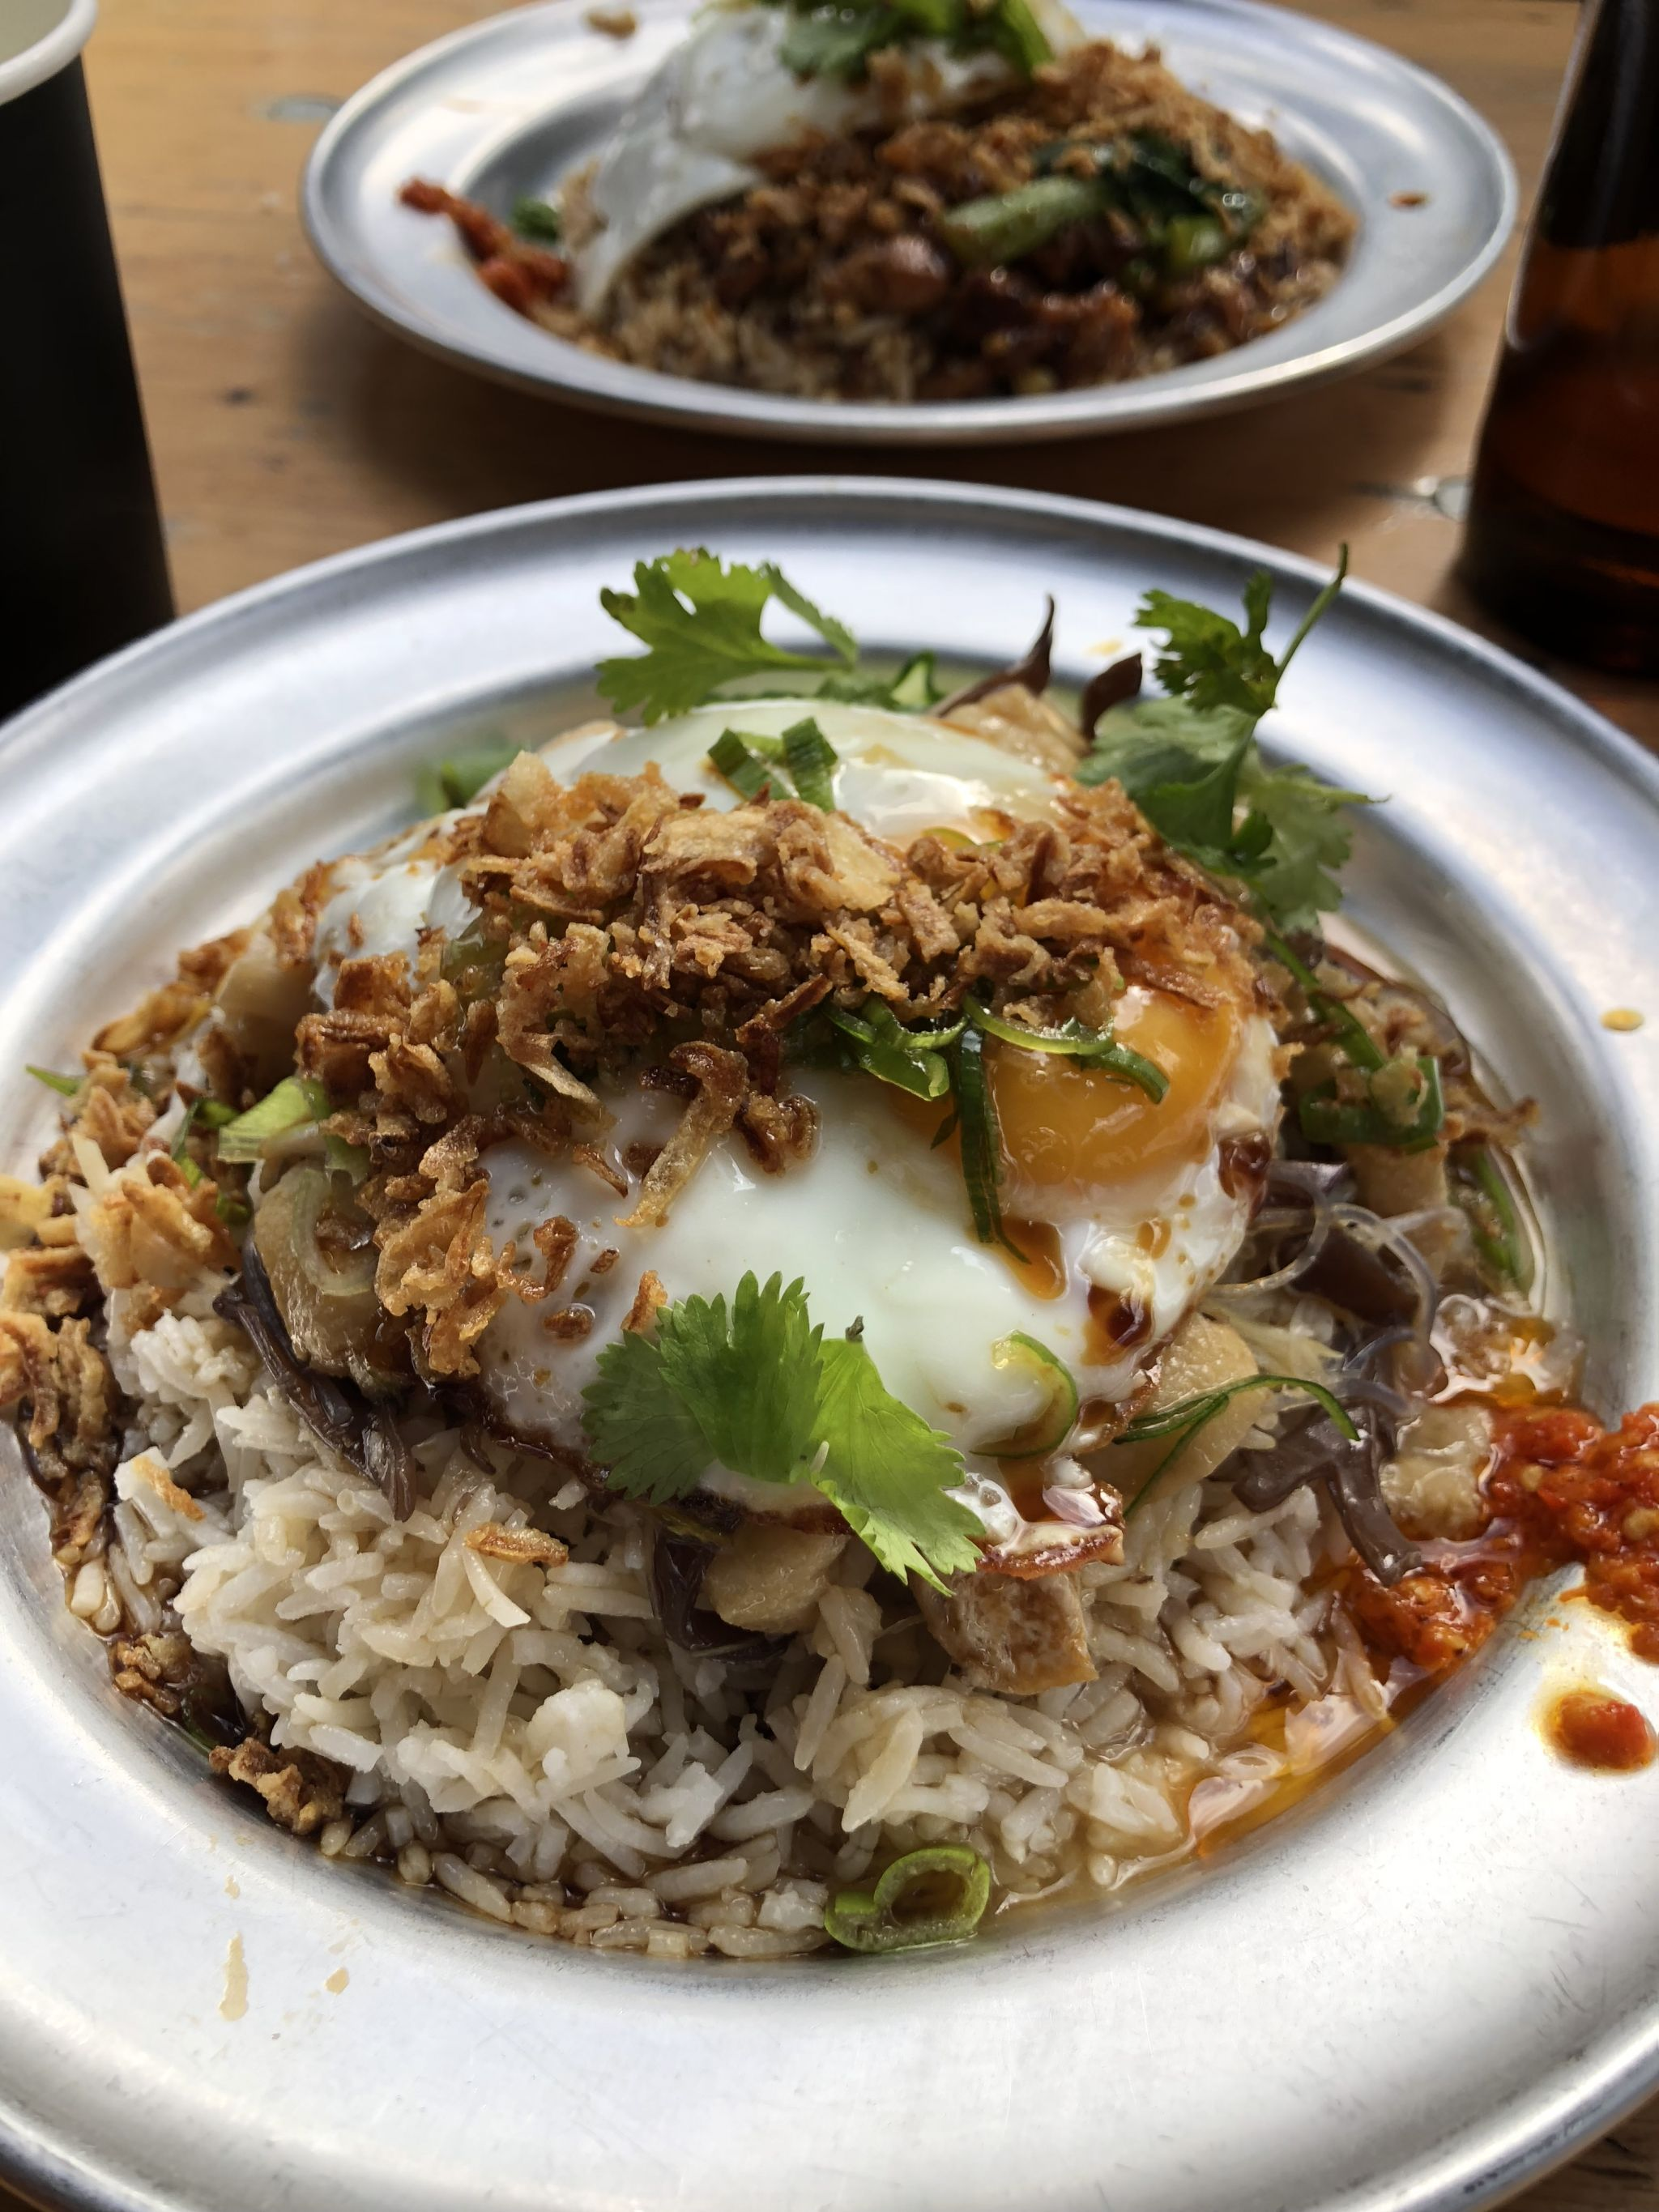 fried egg on rice